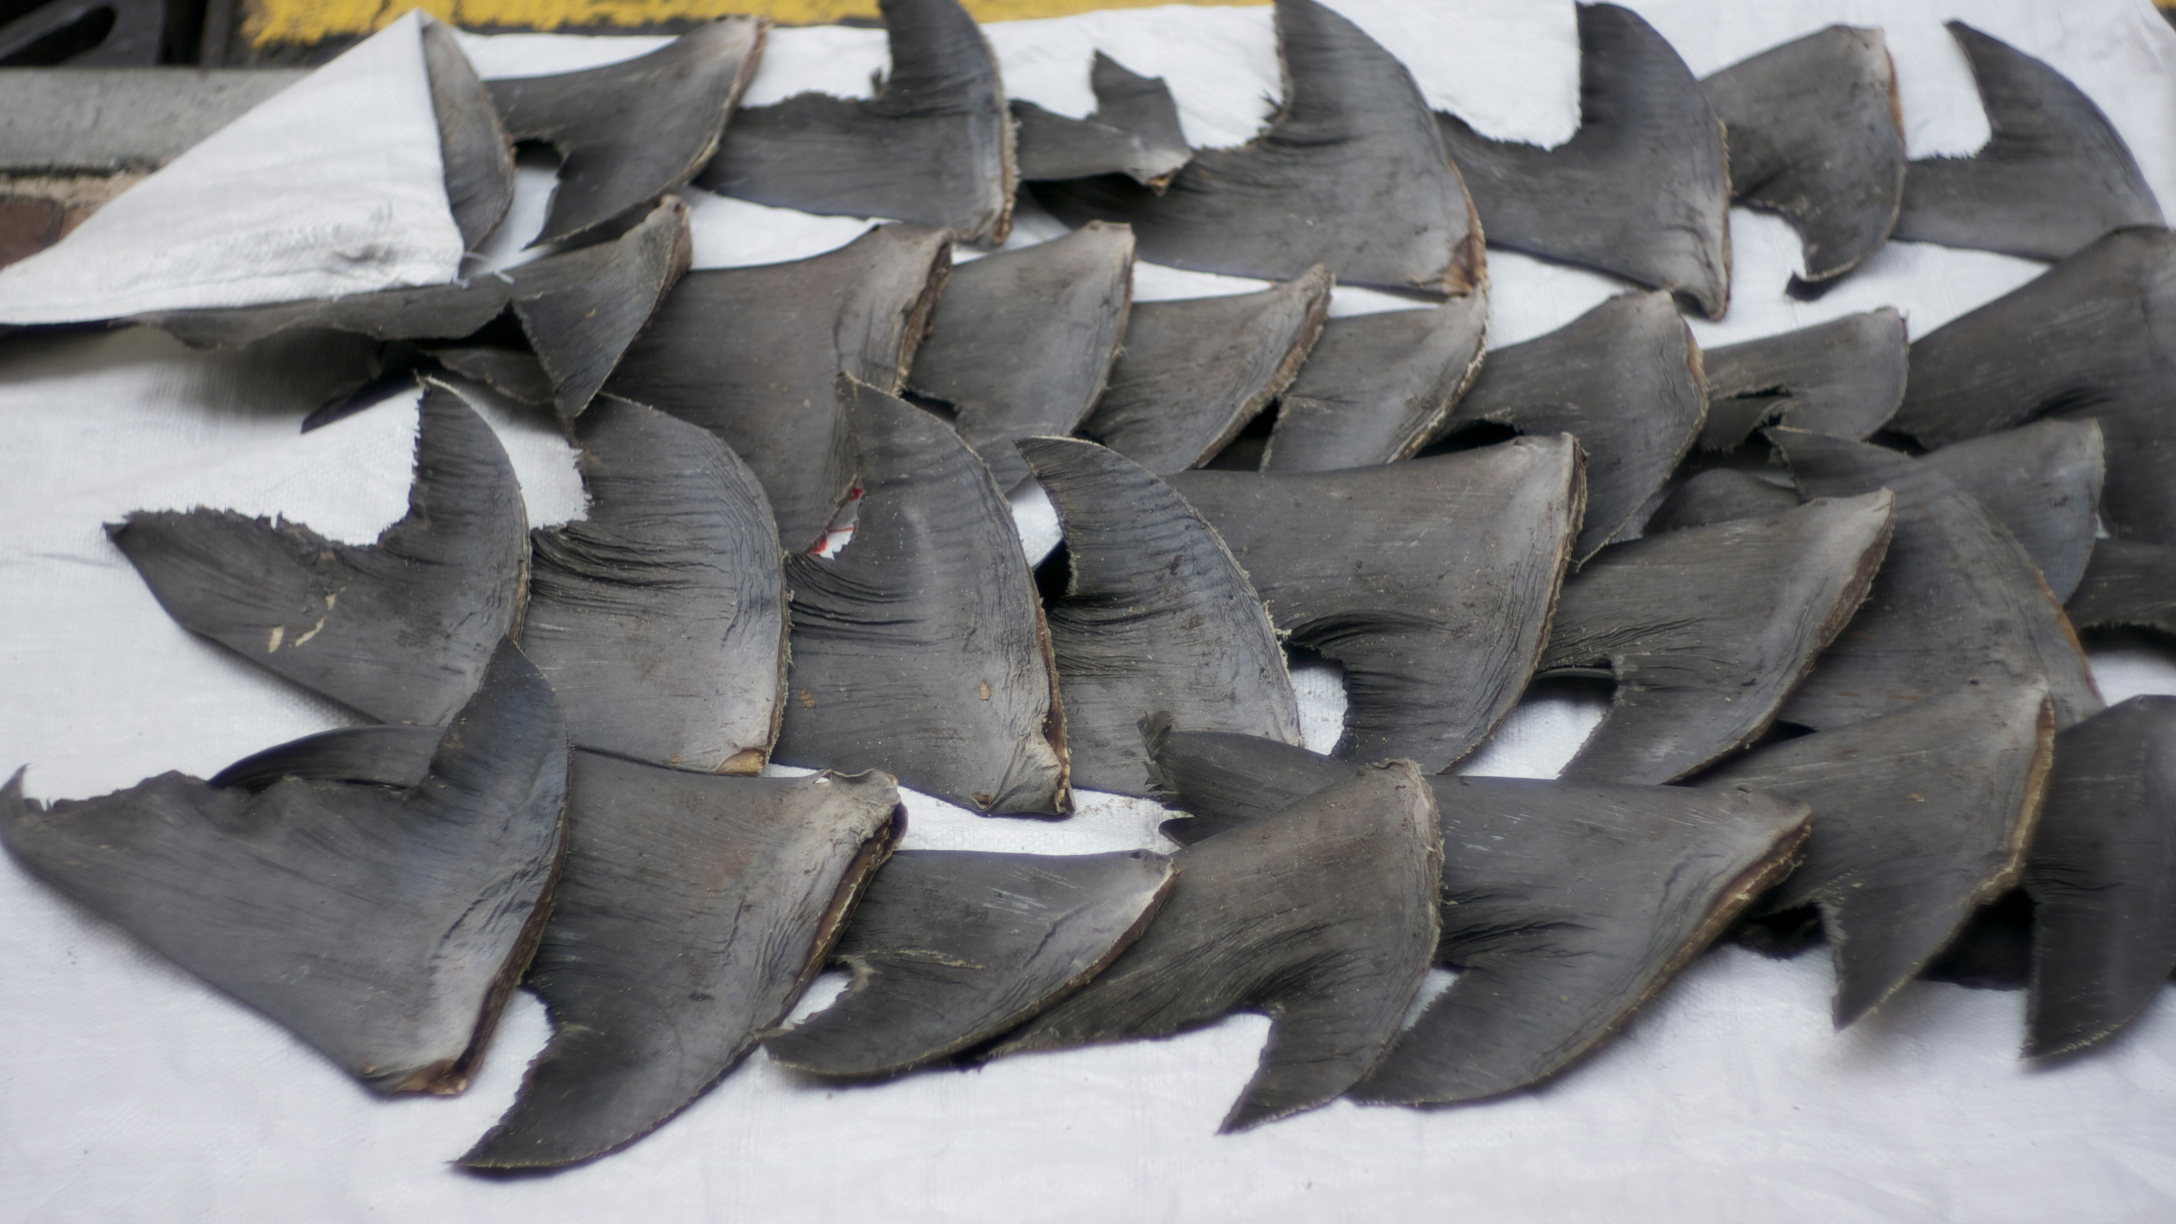 Walked around Sheung Wan area yesterday to shoot for my anti shark fins soup project, I was surprised to see these fresh shark fins being dried on the sidewalk openly on a busy street just 3 blocks from the nearest MTR exit!